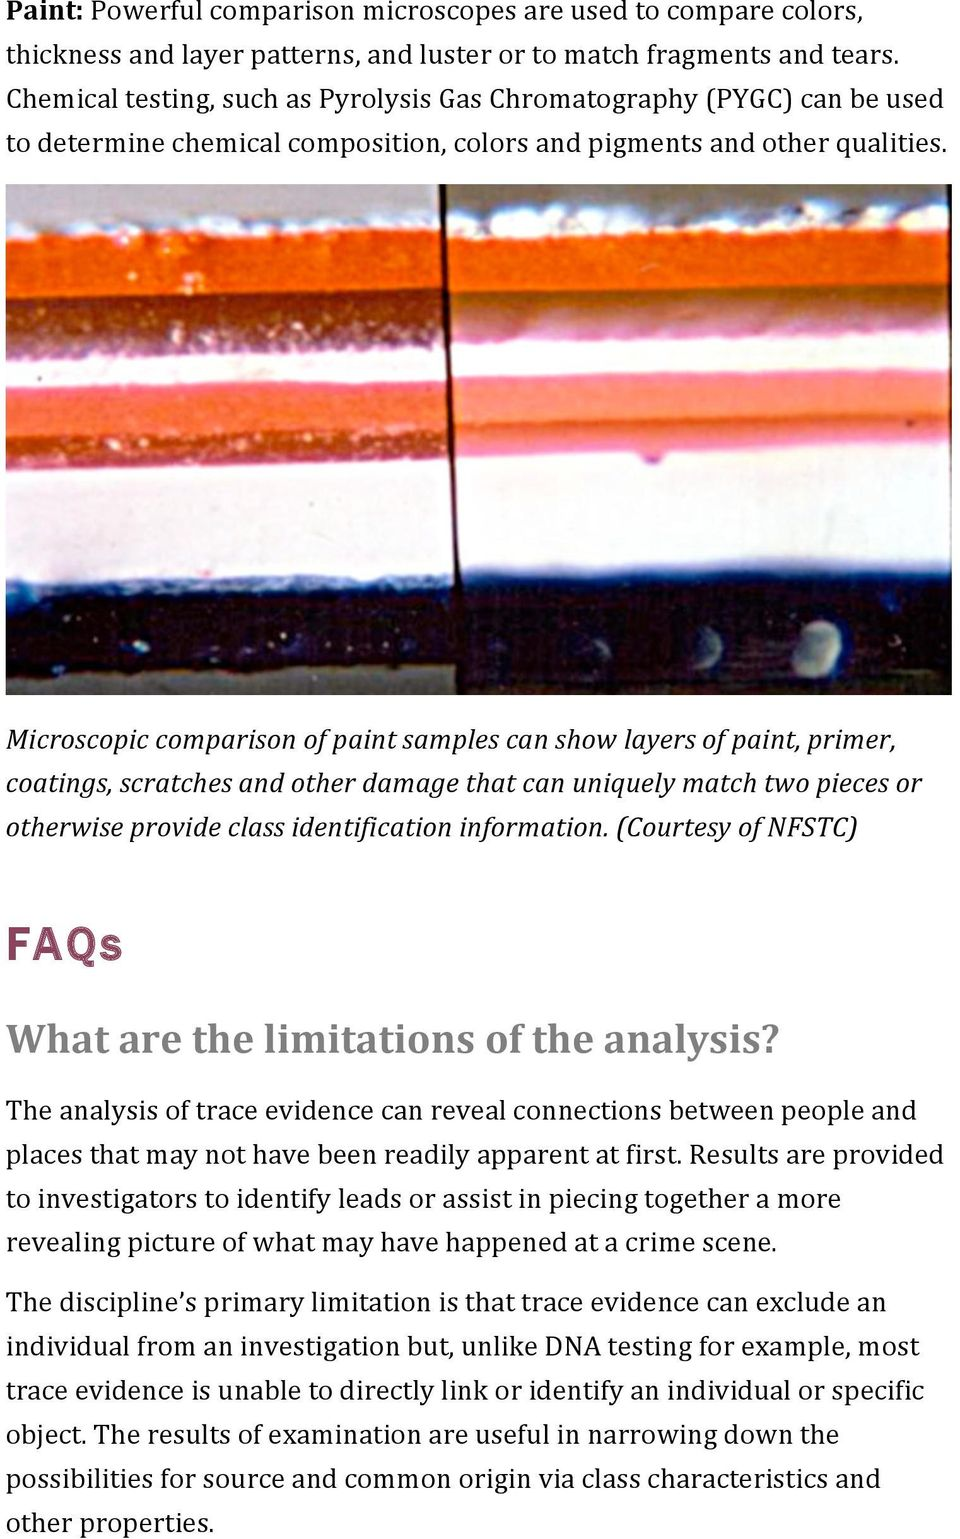 Microscopic comparison of paint samples can show layers of paint, primer, coatings, scratches and other damage that can uniquely match two pieces or otherwise provide class identification information.